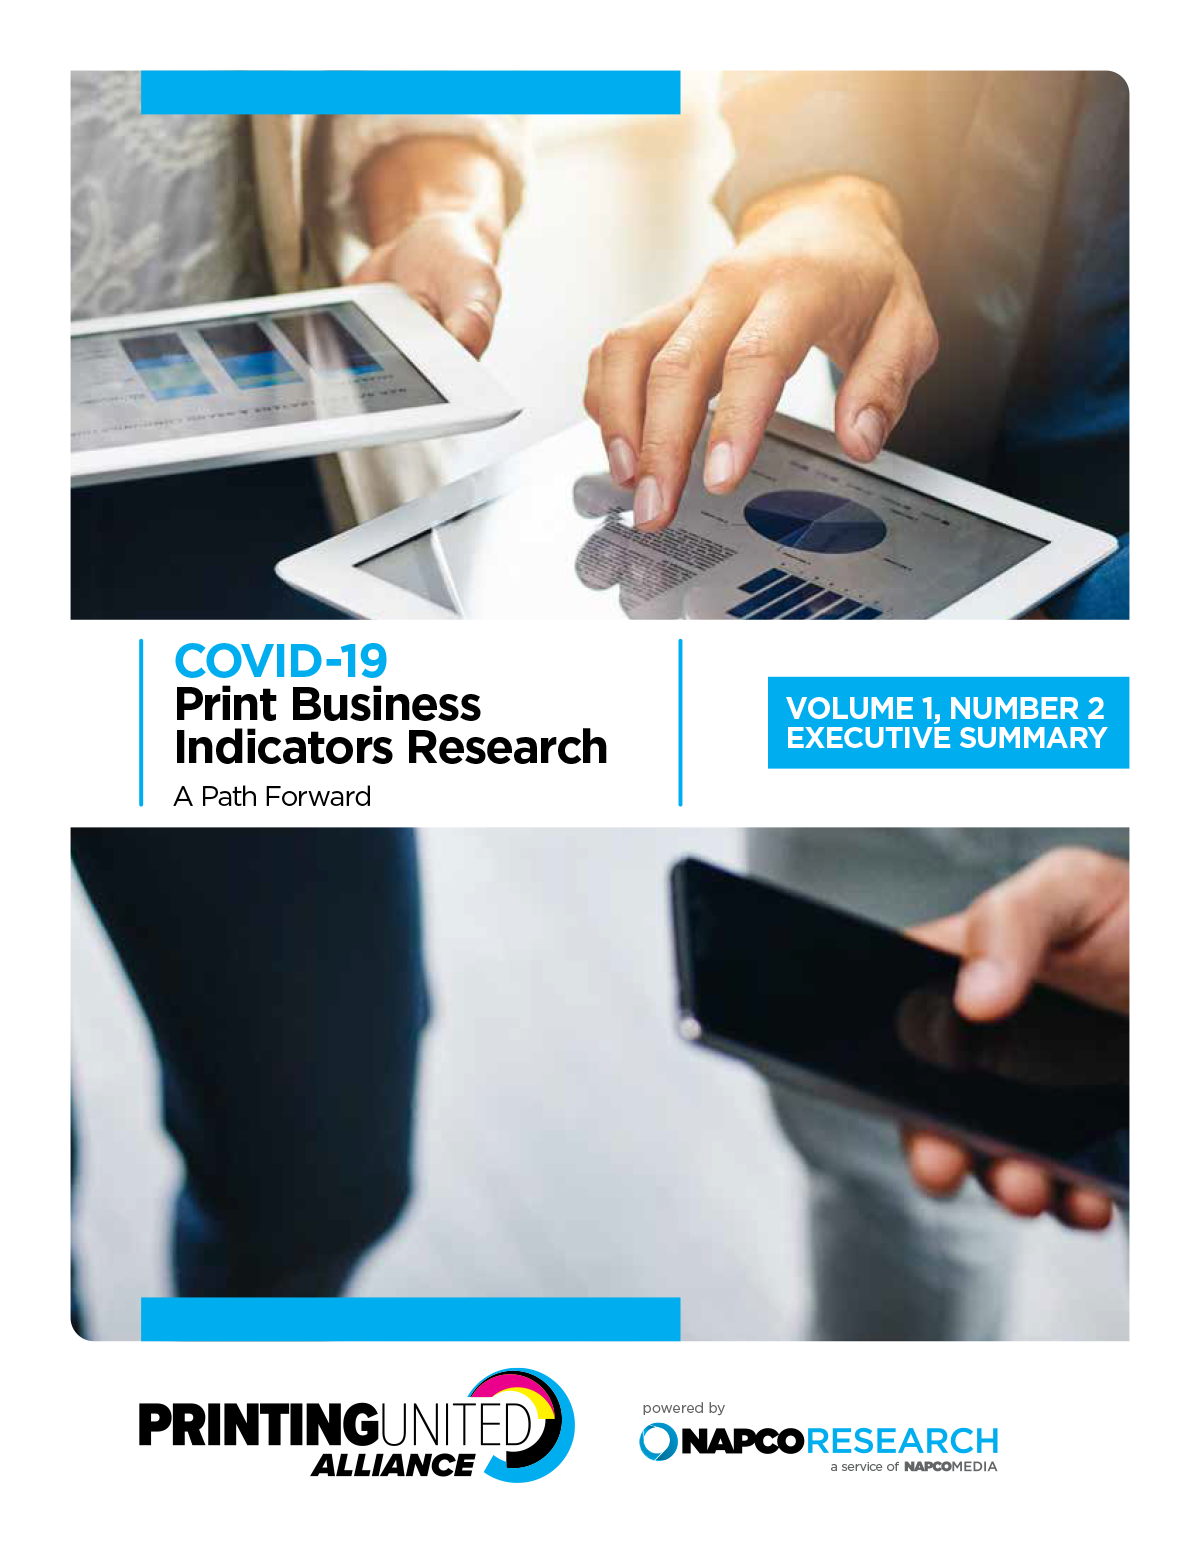 COVID-19 Print Business Indicators Research: Volume 1, Number 2